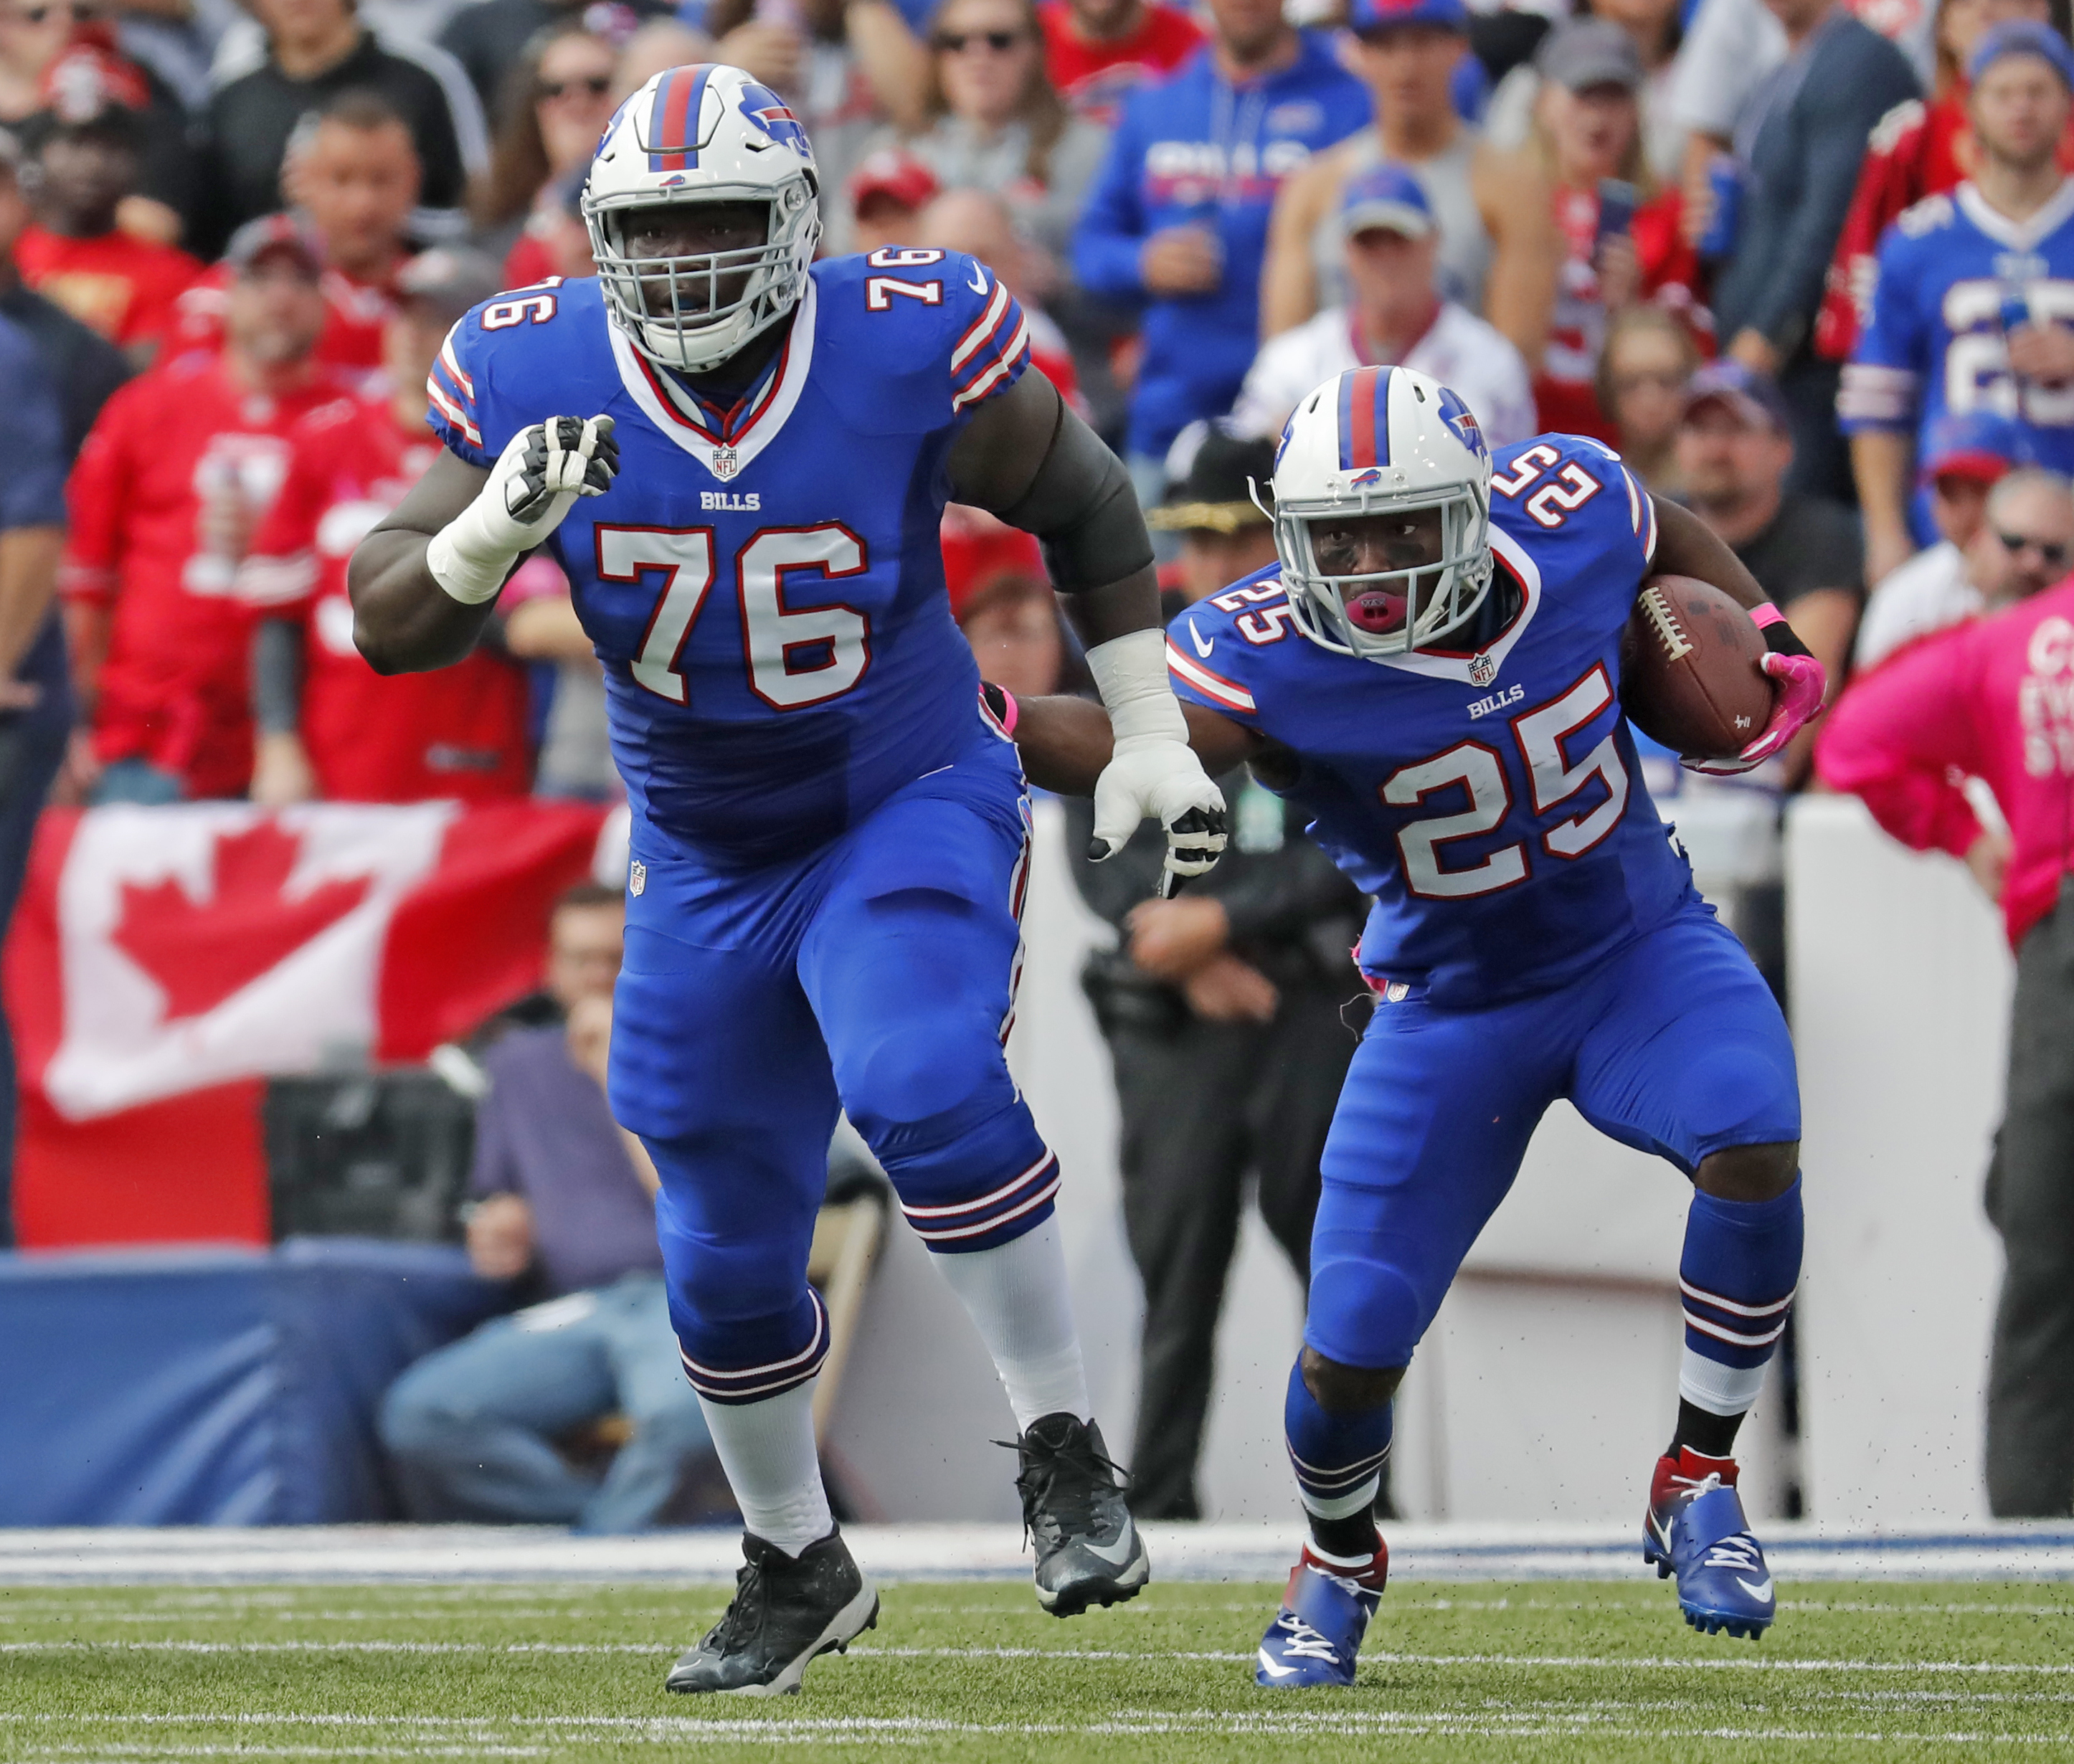 Buffalo Bills guard John Miller (76) clears a path for LeSean McCoy during a recent game. Miller will attend a family gathering Saturday in Miami during the one-year anniversary of the death of his mother. (Harry Scull Jr./Buffalo News)